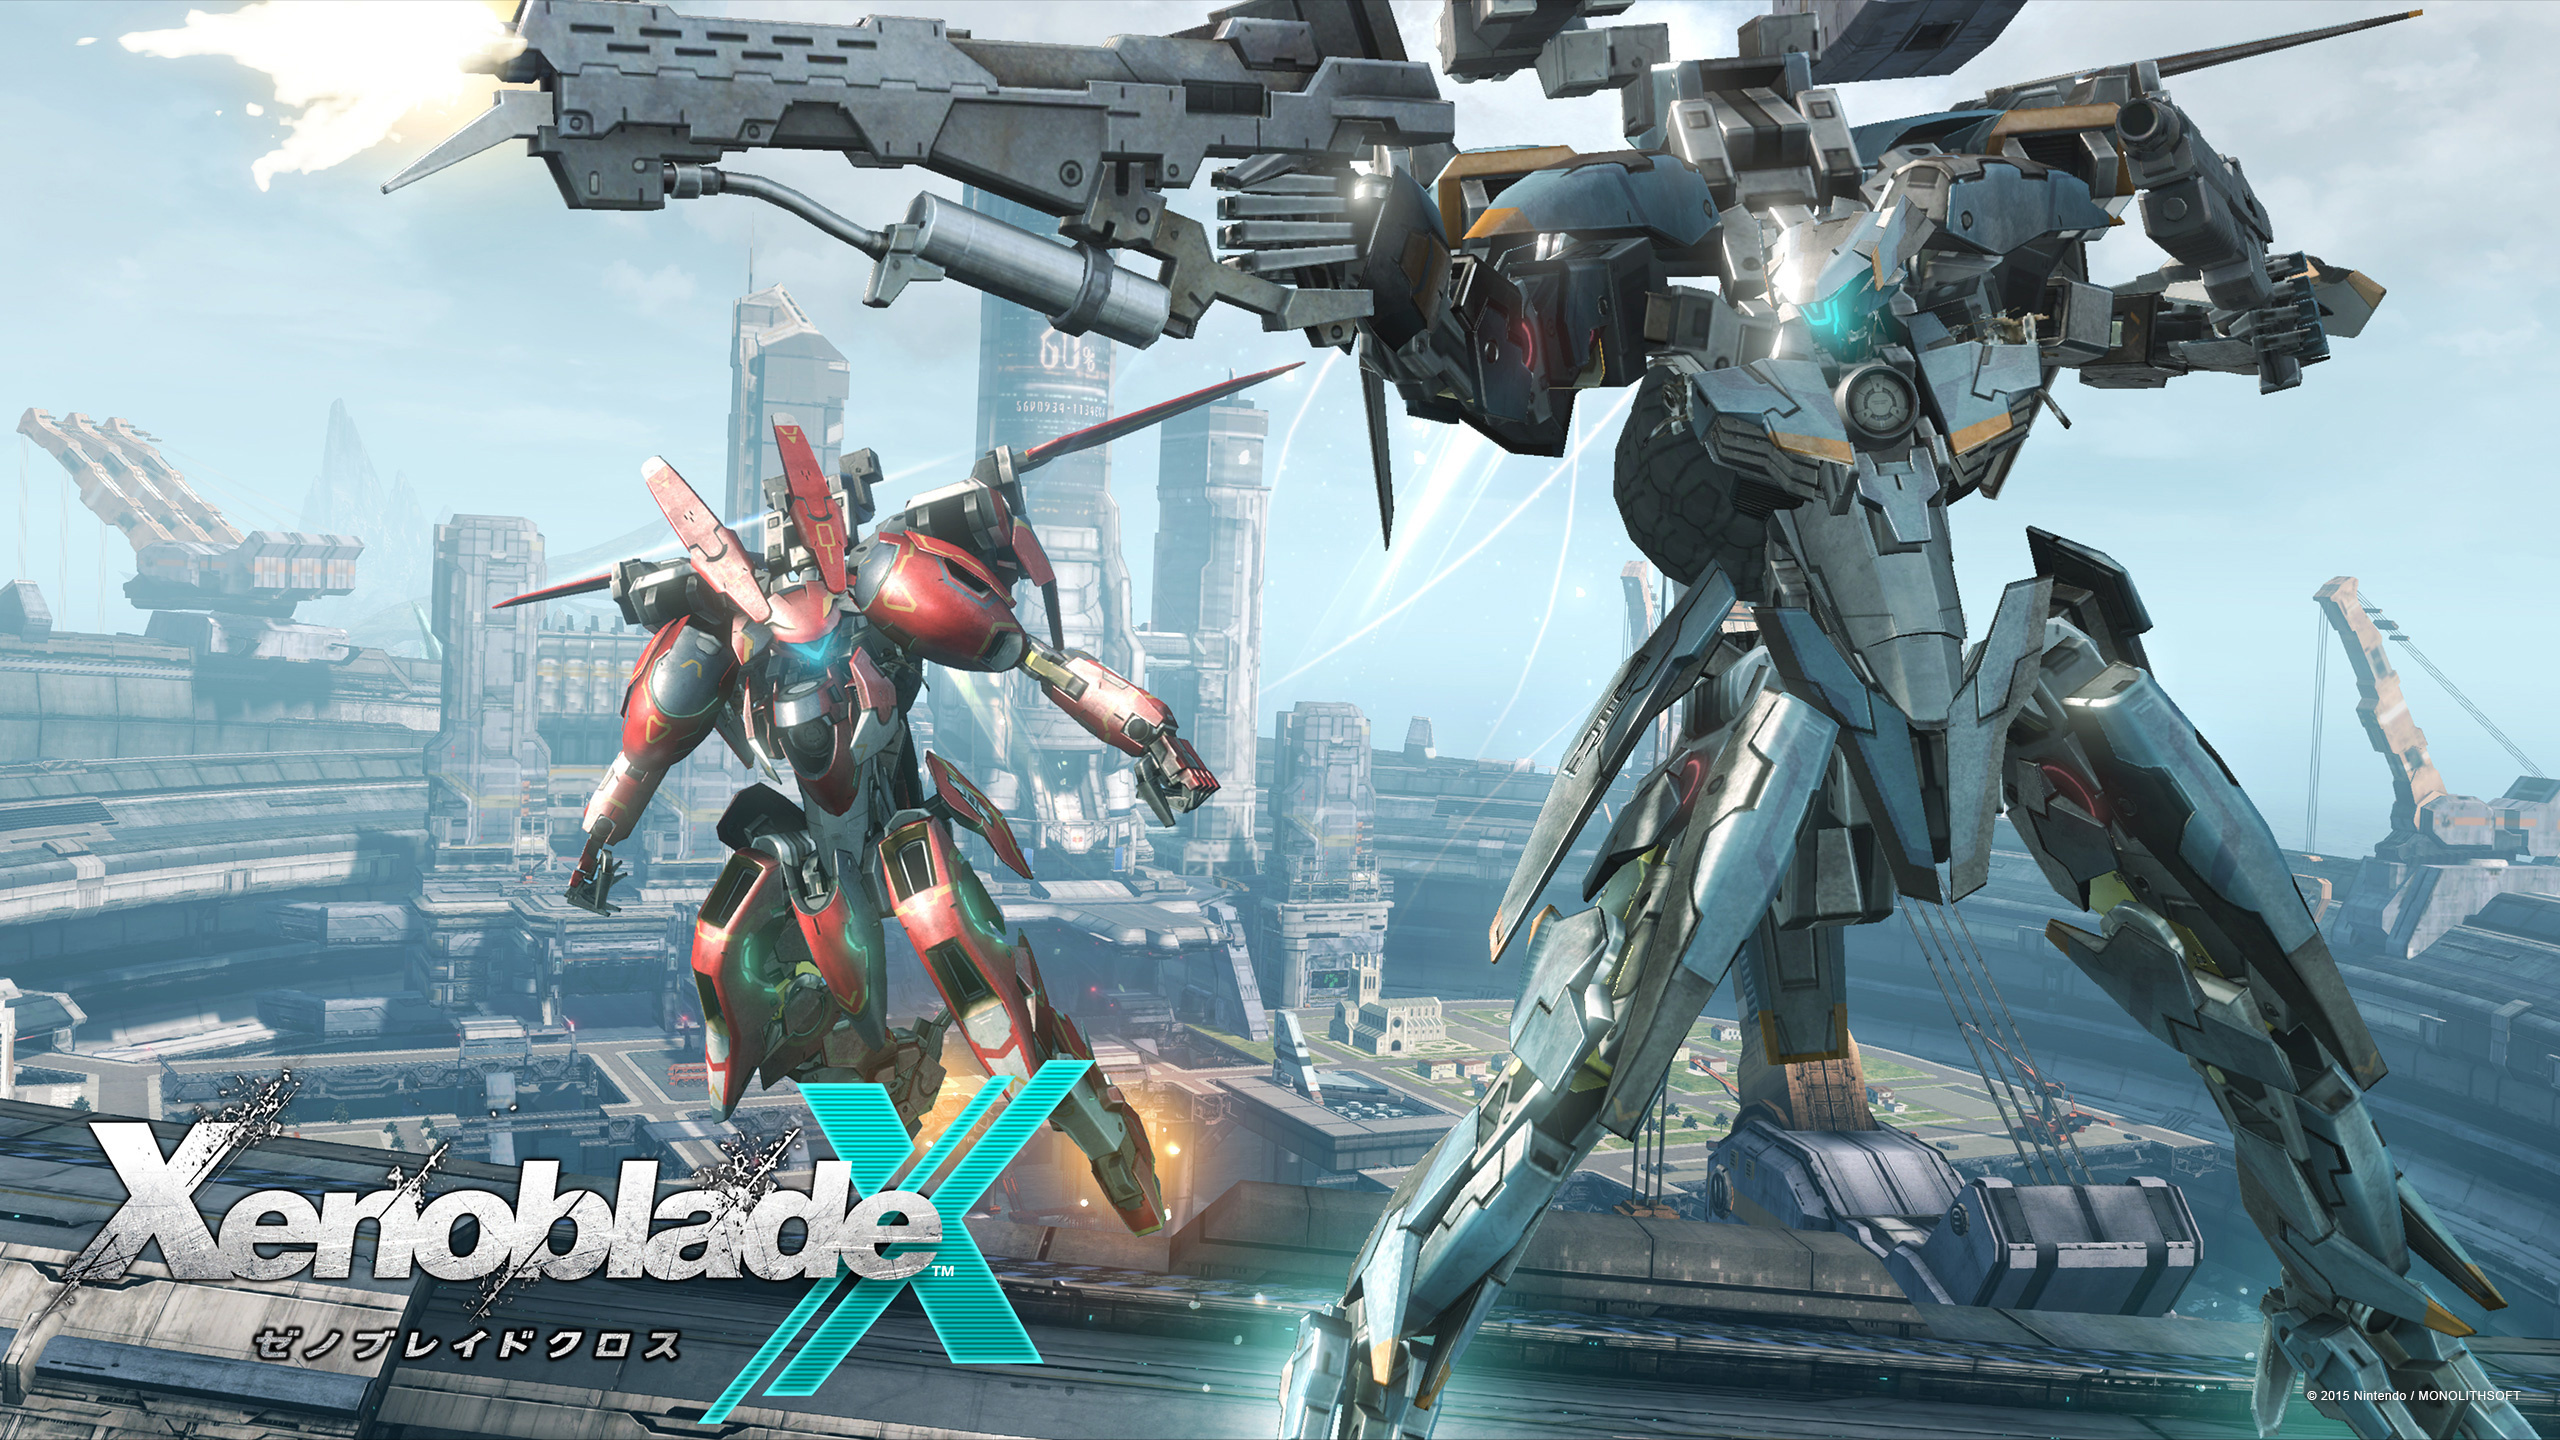 Getting started with xenoblade chronicles x on wii u guide xenoblade x1g xenoblade chronicles x is out now gumiabroncs Image collections